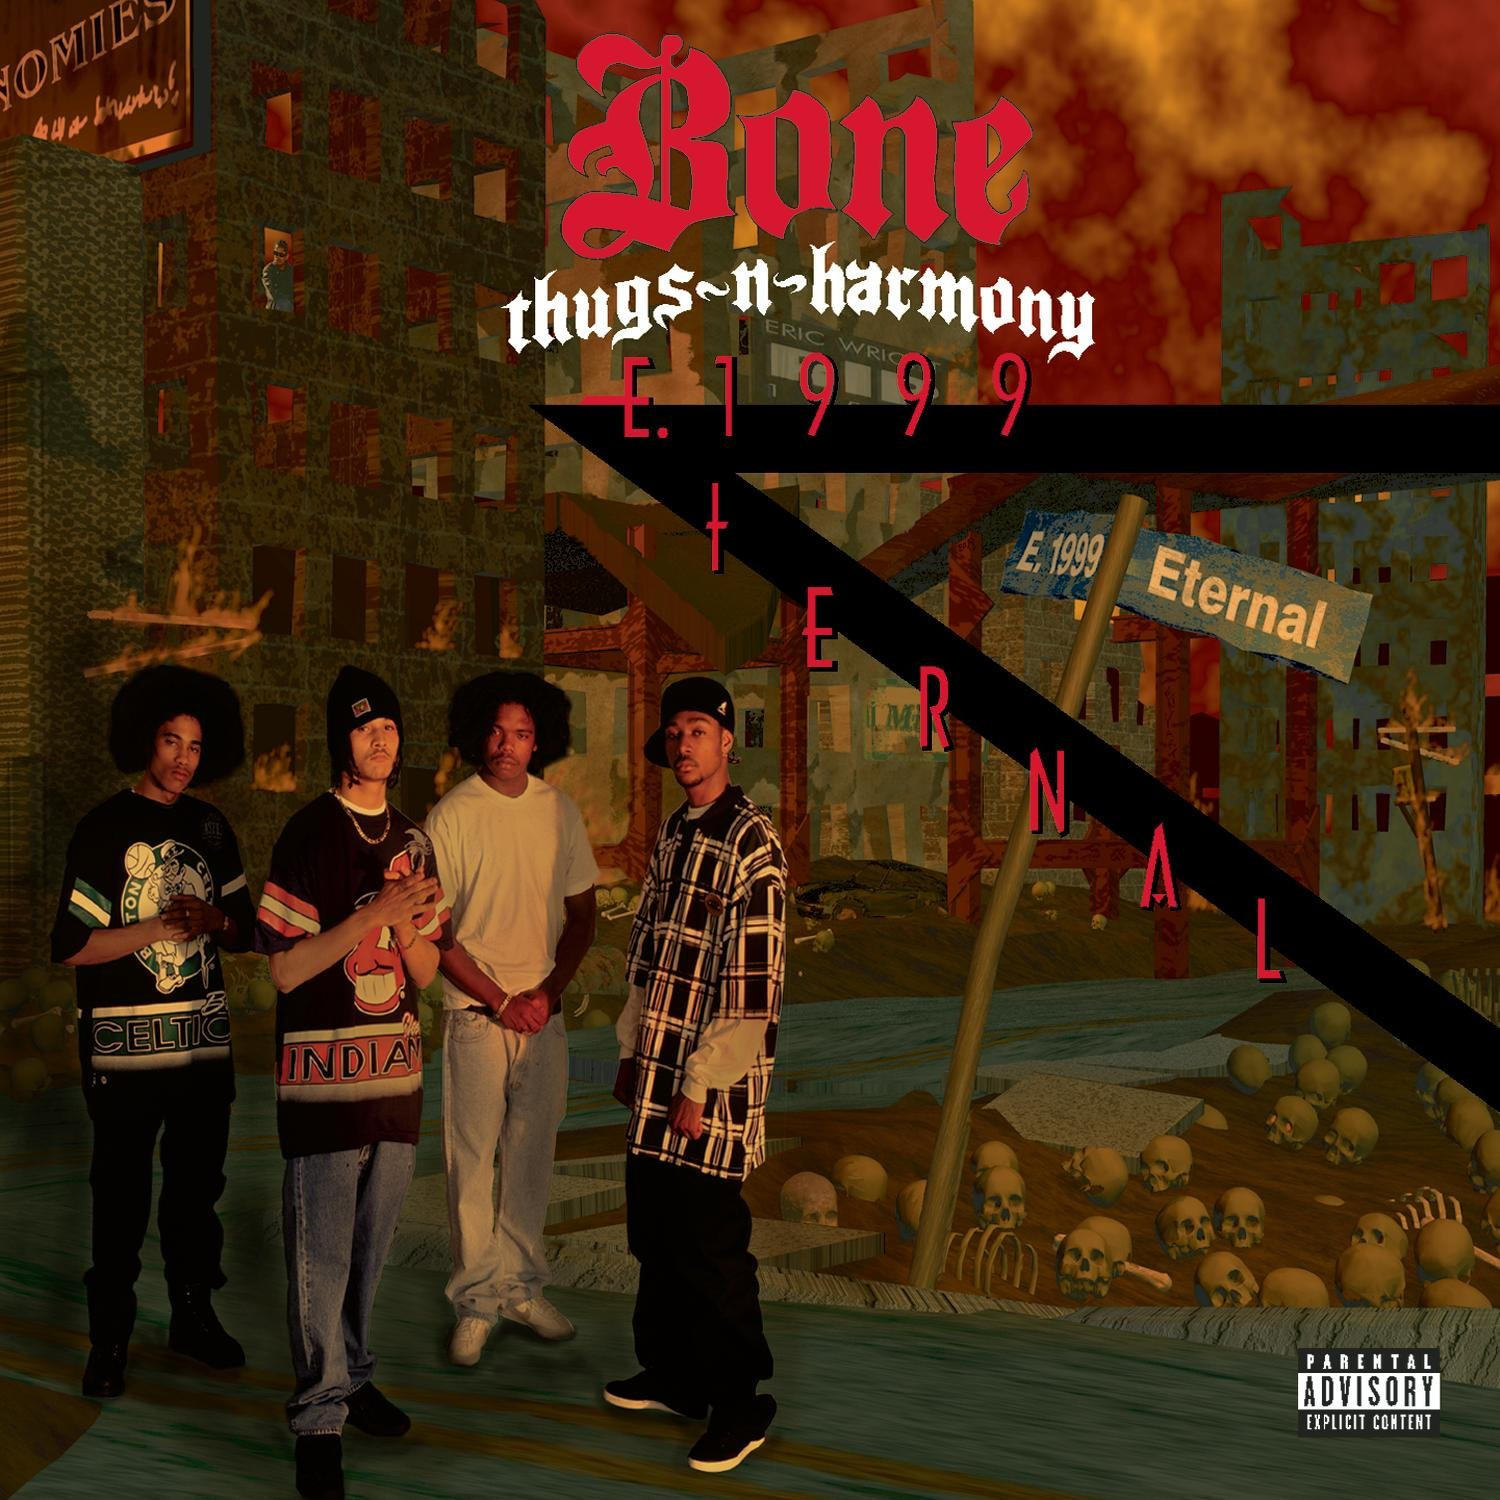 E. 1999 ETERNAL by BONE THUGS N HARMONY